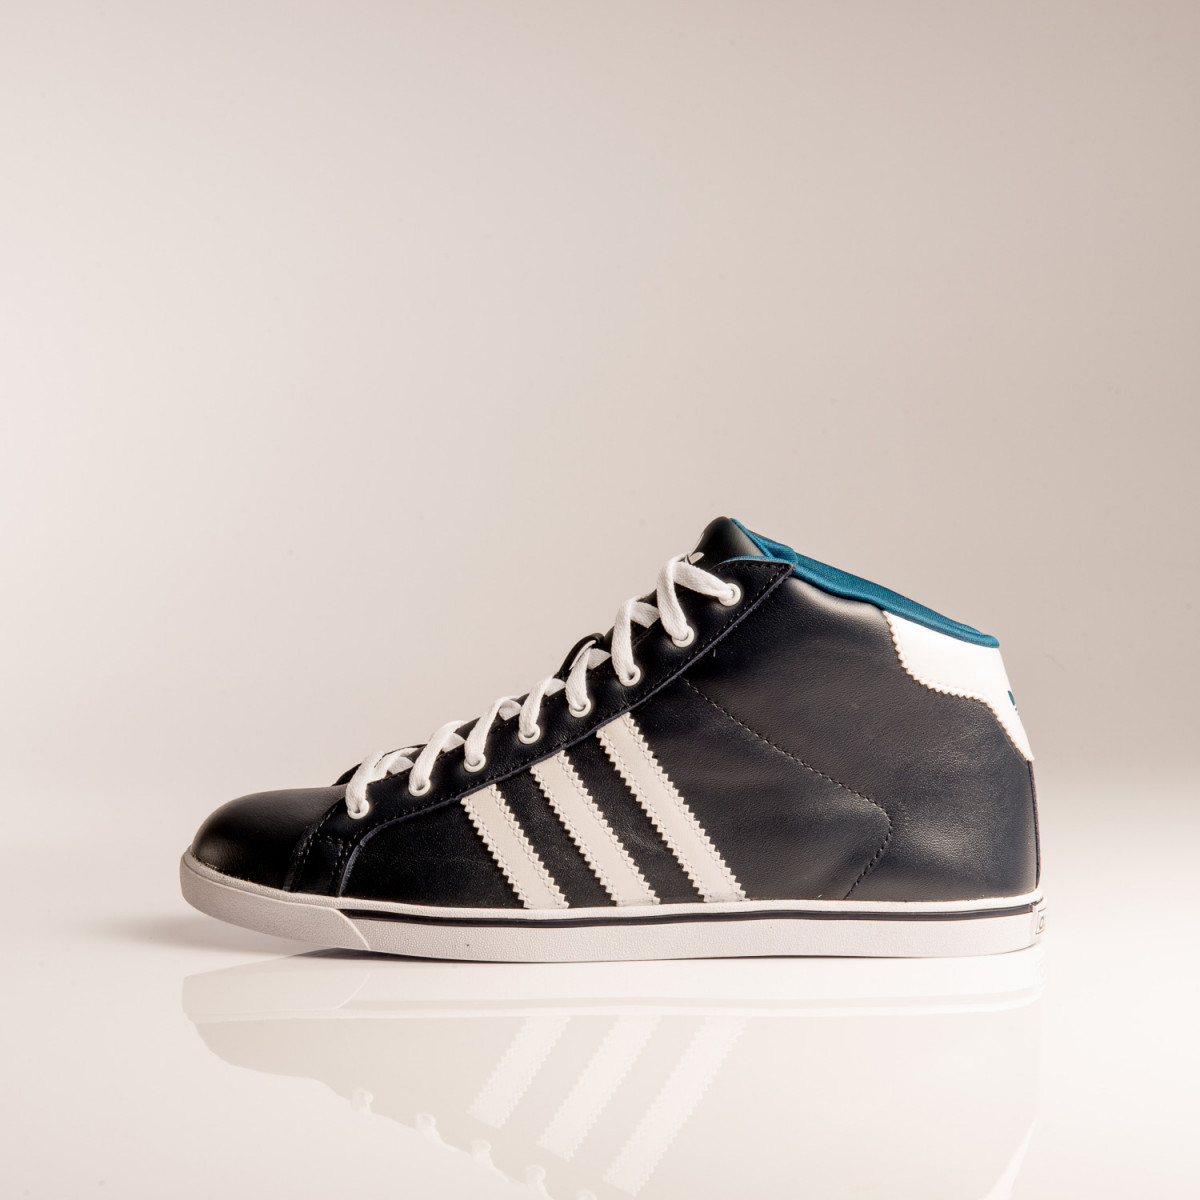 ZAPATILLAS ADIDAS ORIGINALS COURT STAR SLIM MID